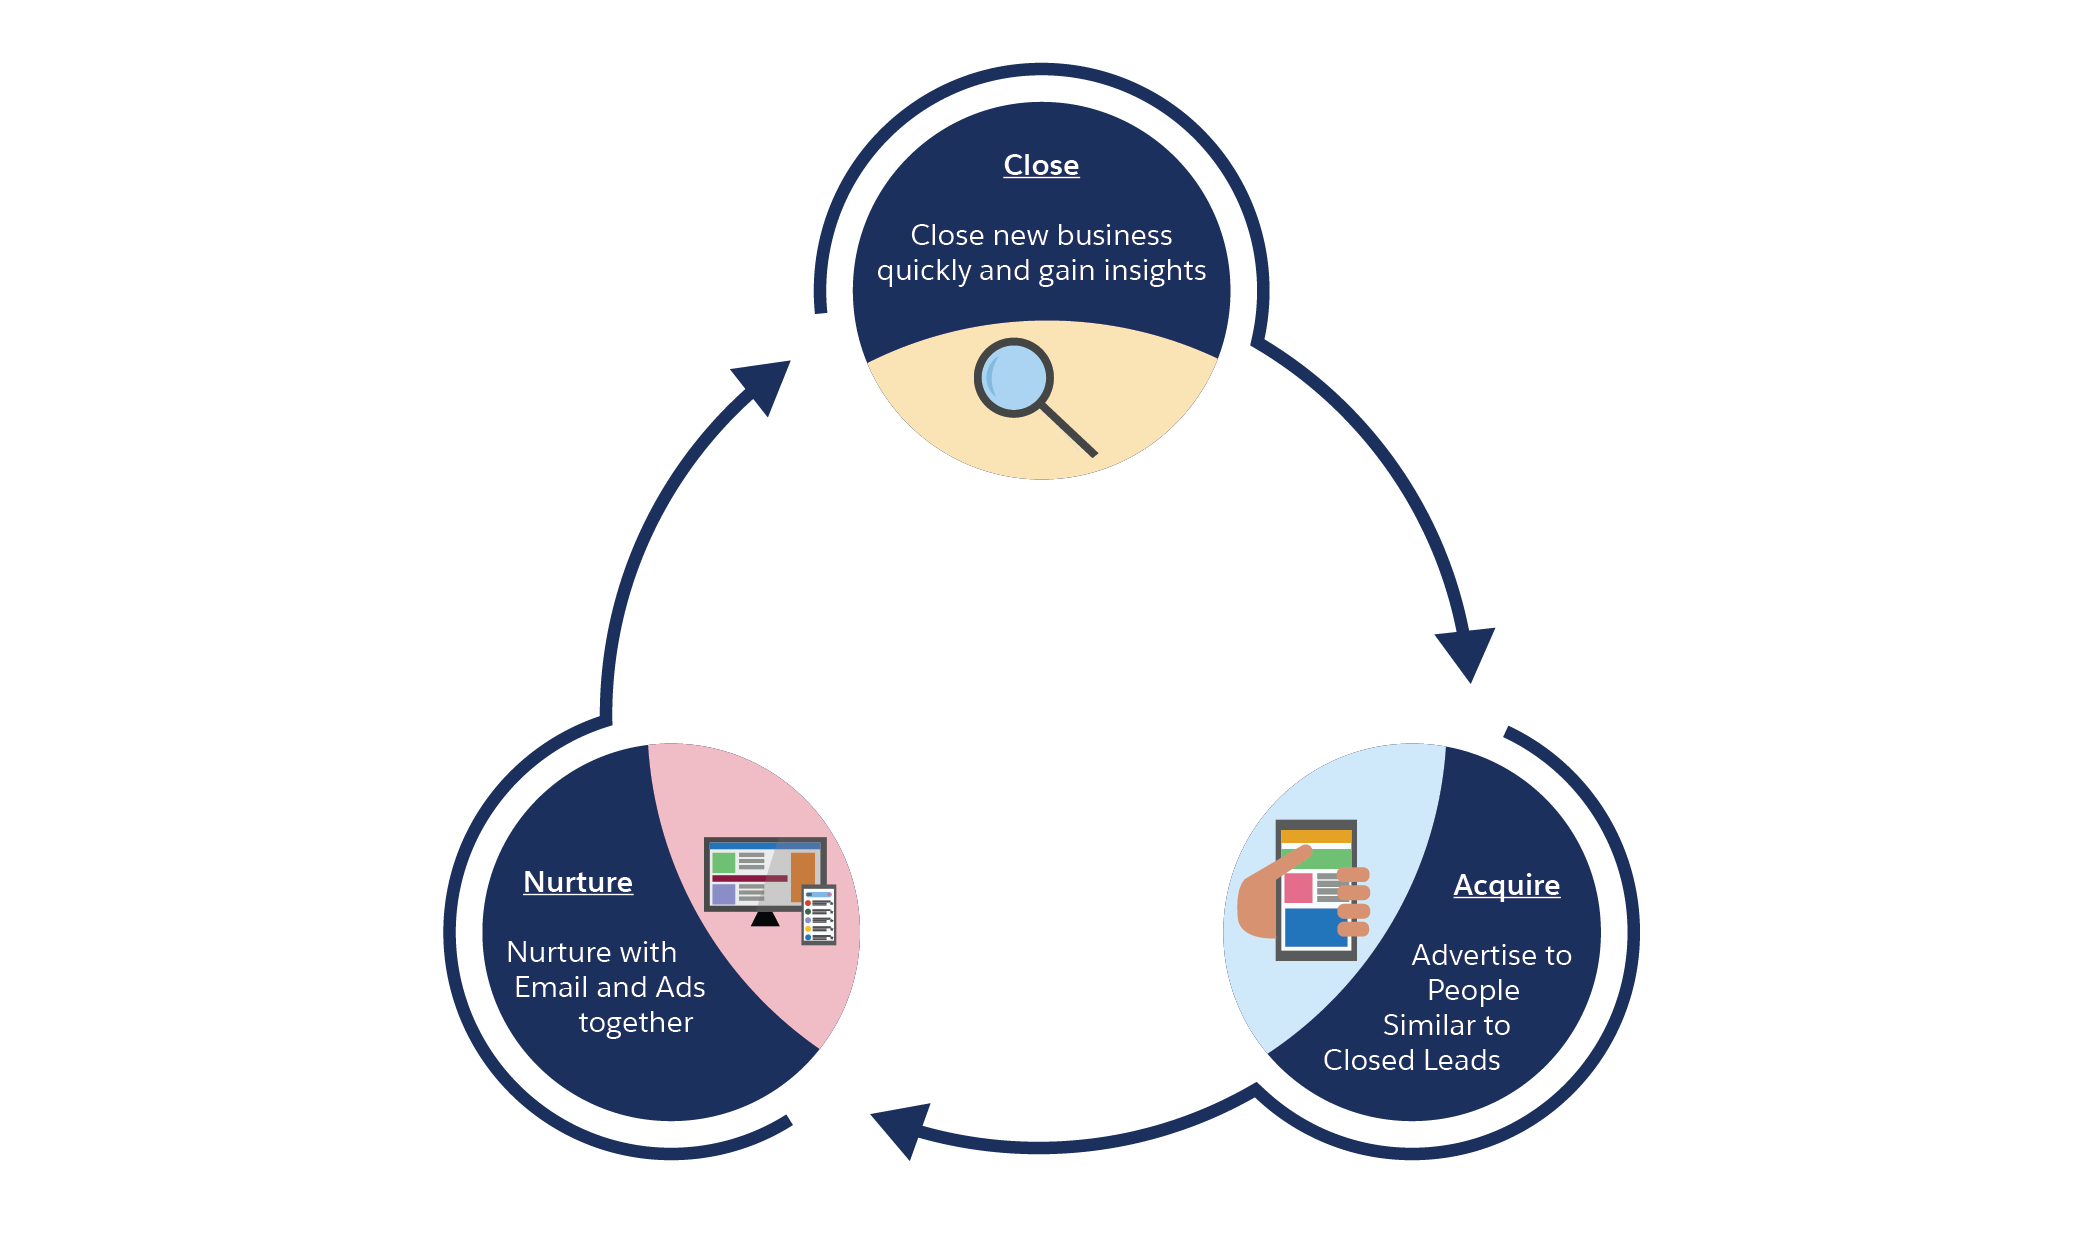 A set of arrows in a circle connect the words: Acquire: Advertise to people similar to closed leads; Nurture: Nurture with email and ads together; and Close: Close new business quickly and gain insights.